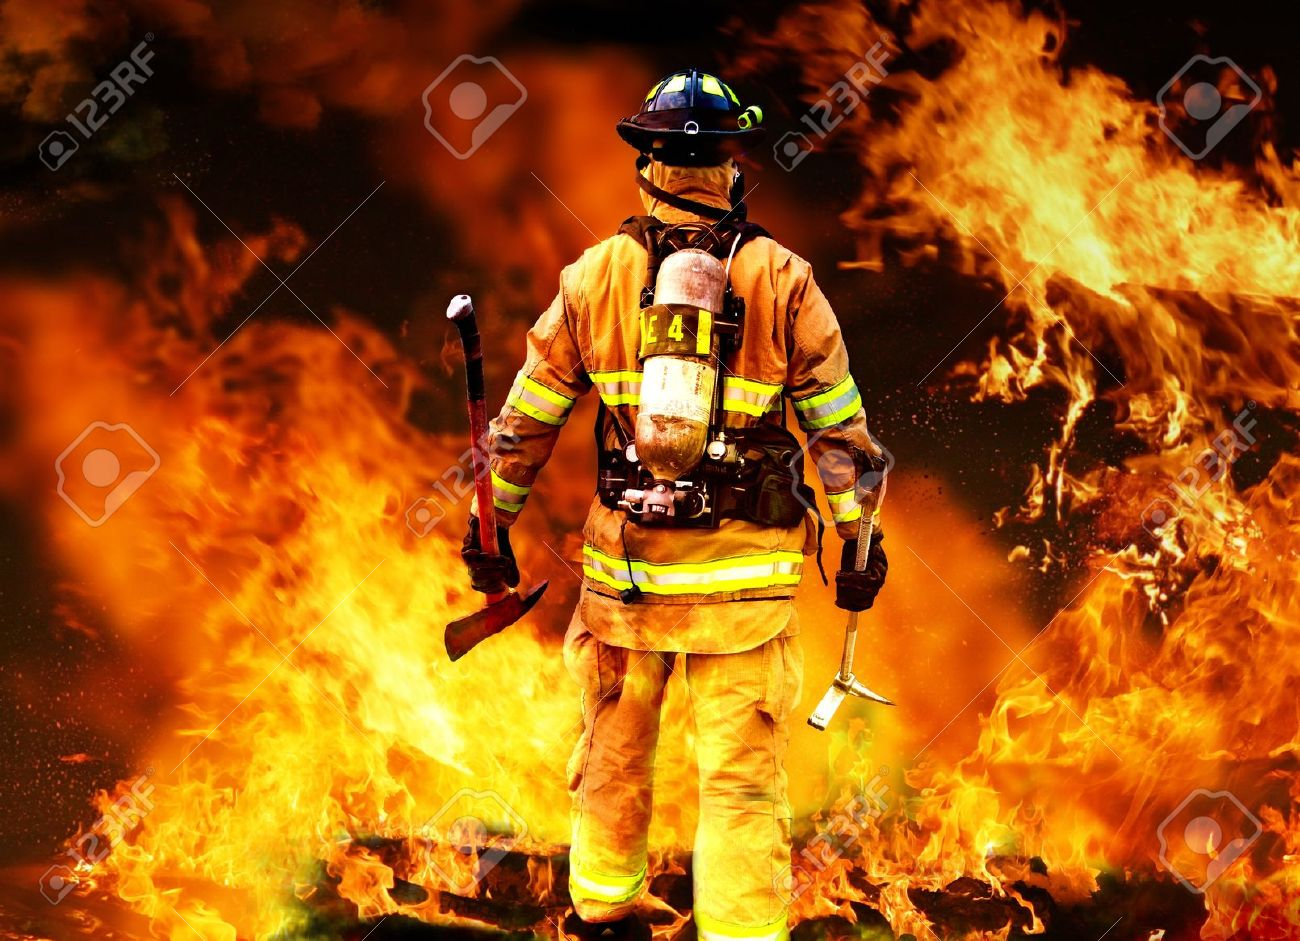 fireman images u0026 stock pictures royalty free fireman photos and